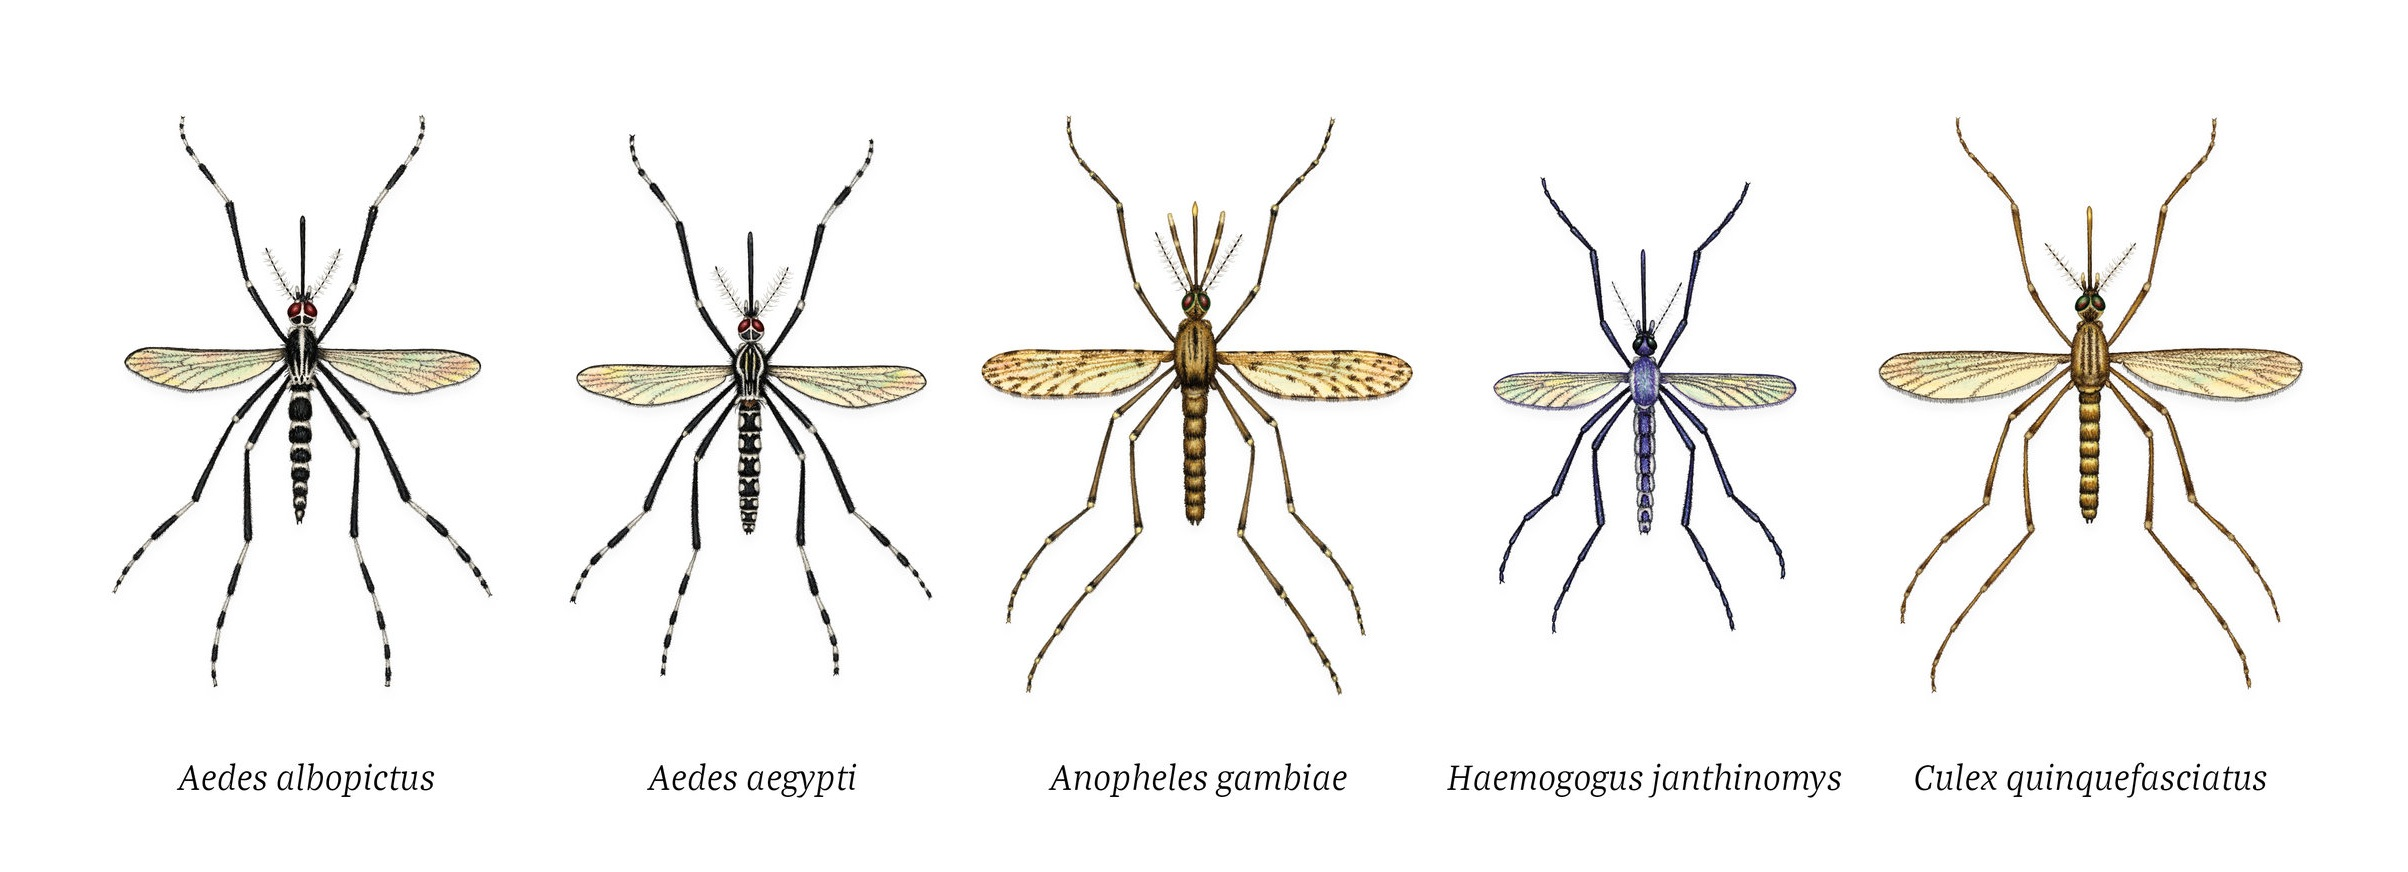 Medically significant mosquito species illustrations for Scientific American